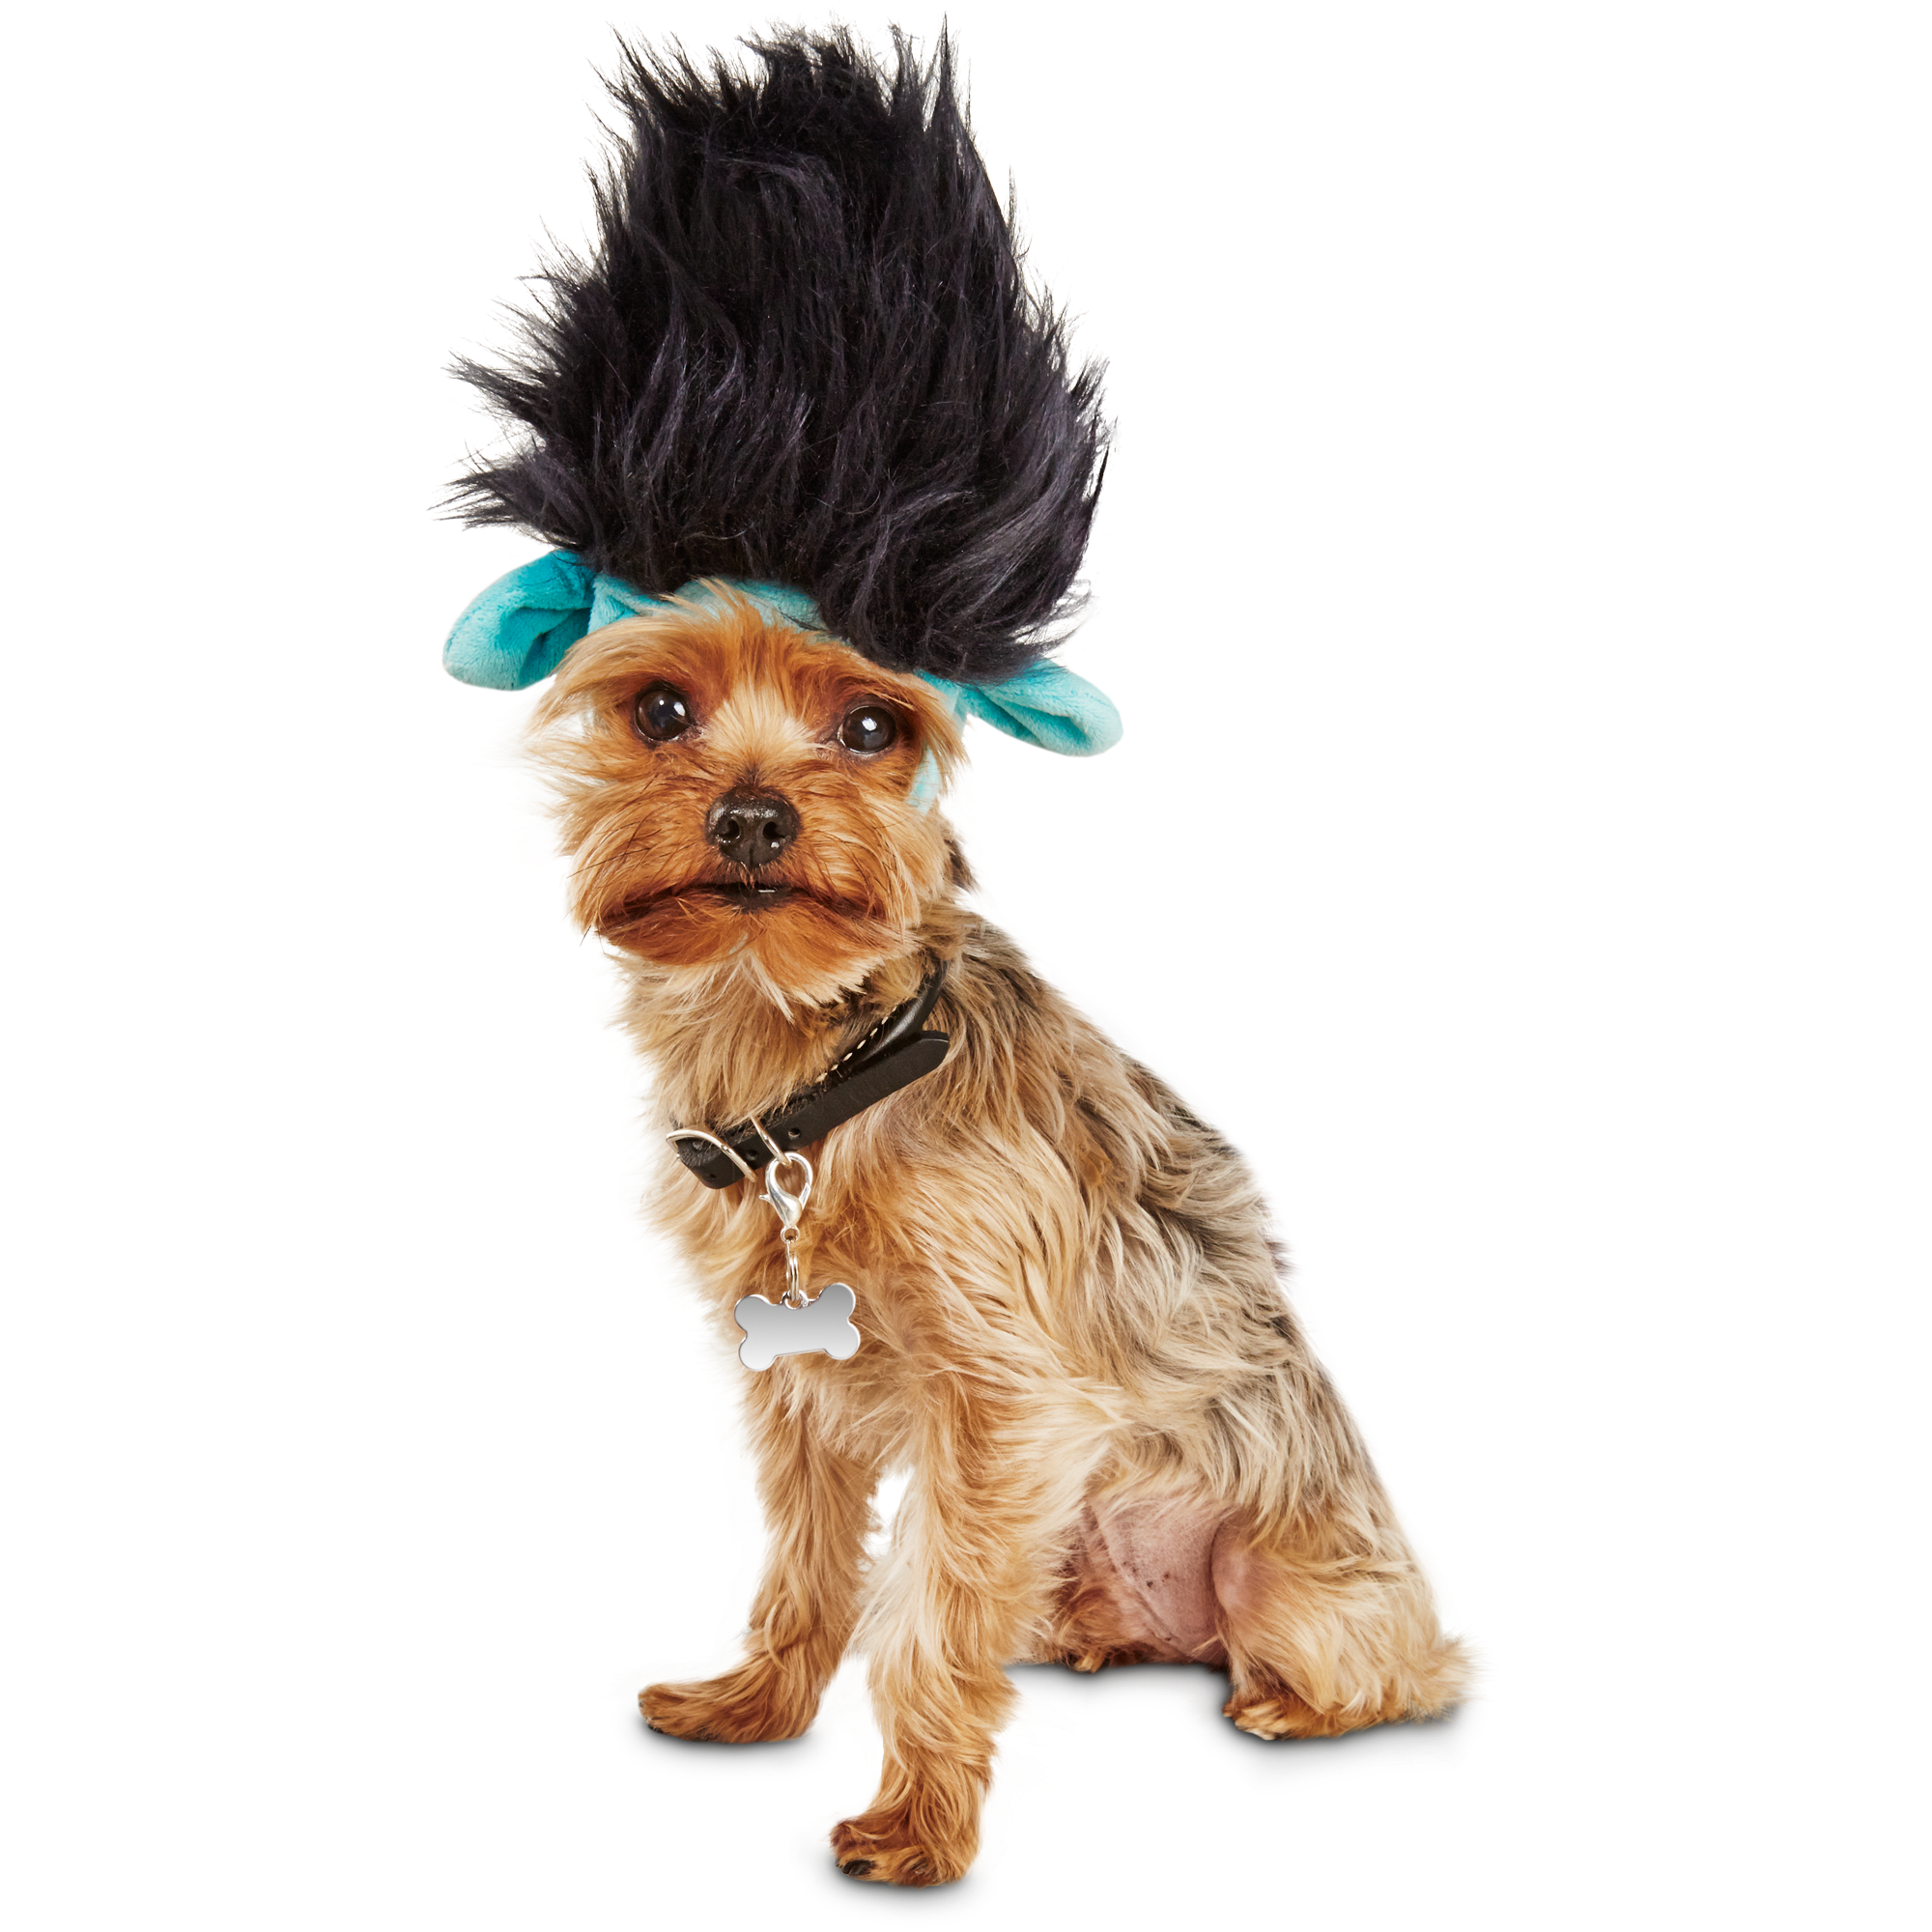 Transform your pet into the lovable but overly cautious character Branch from the movie Trolls. Ultra-soft fabric-lined head wear with character details available in 2 sizes. Dreamworks Trolls copyright 2016 DreamWorks Animation LLC All Right Reserved.